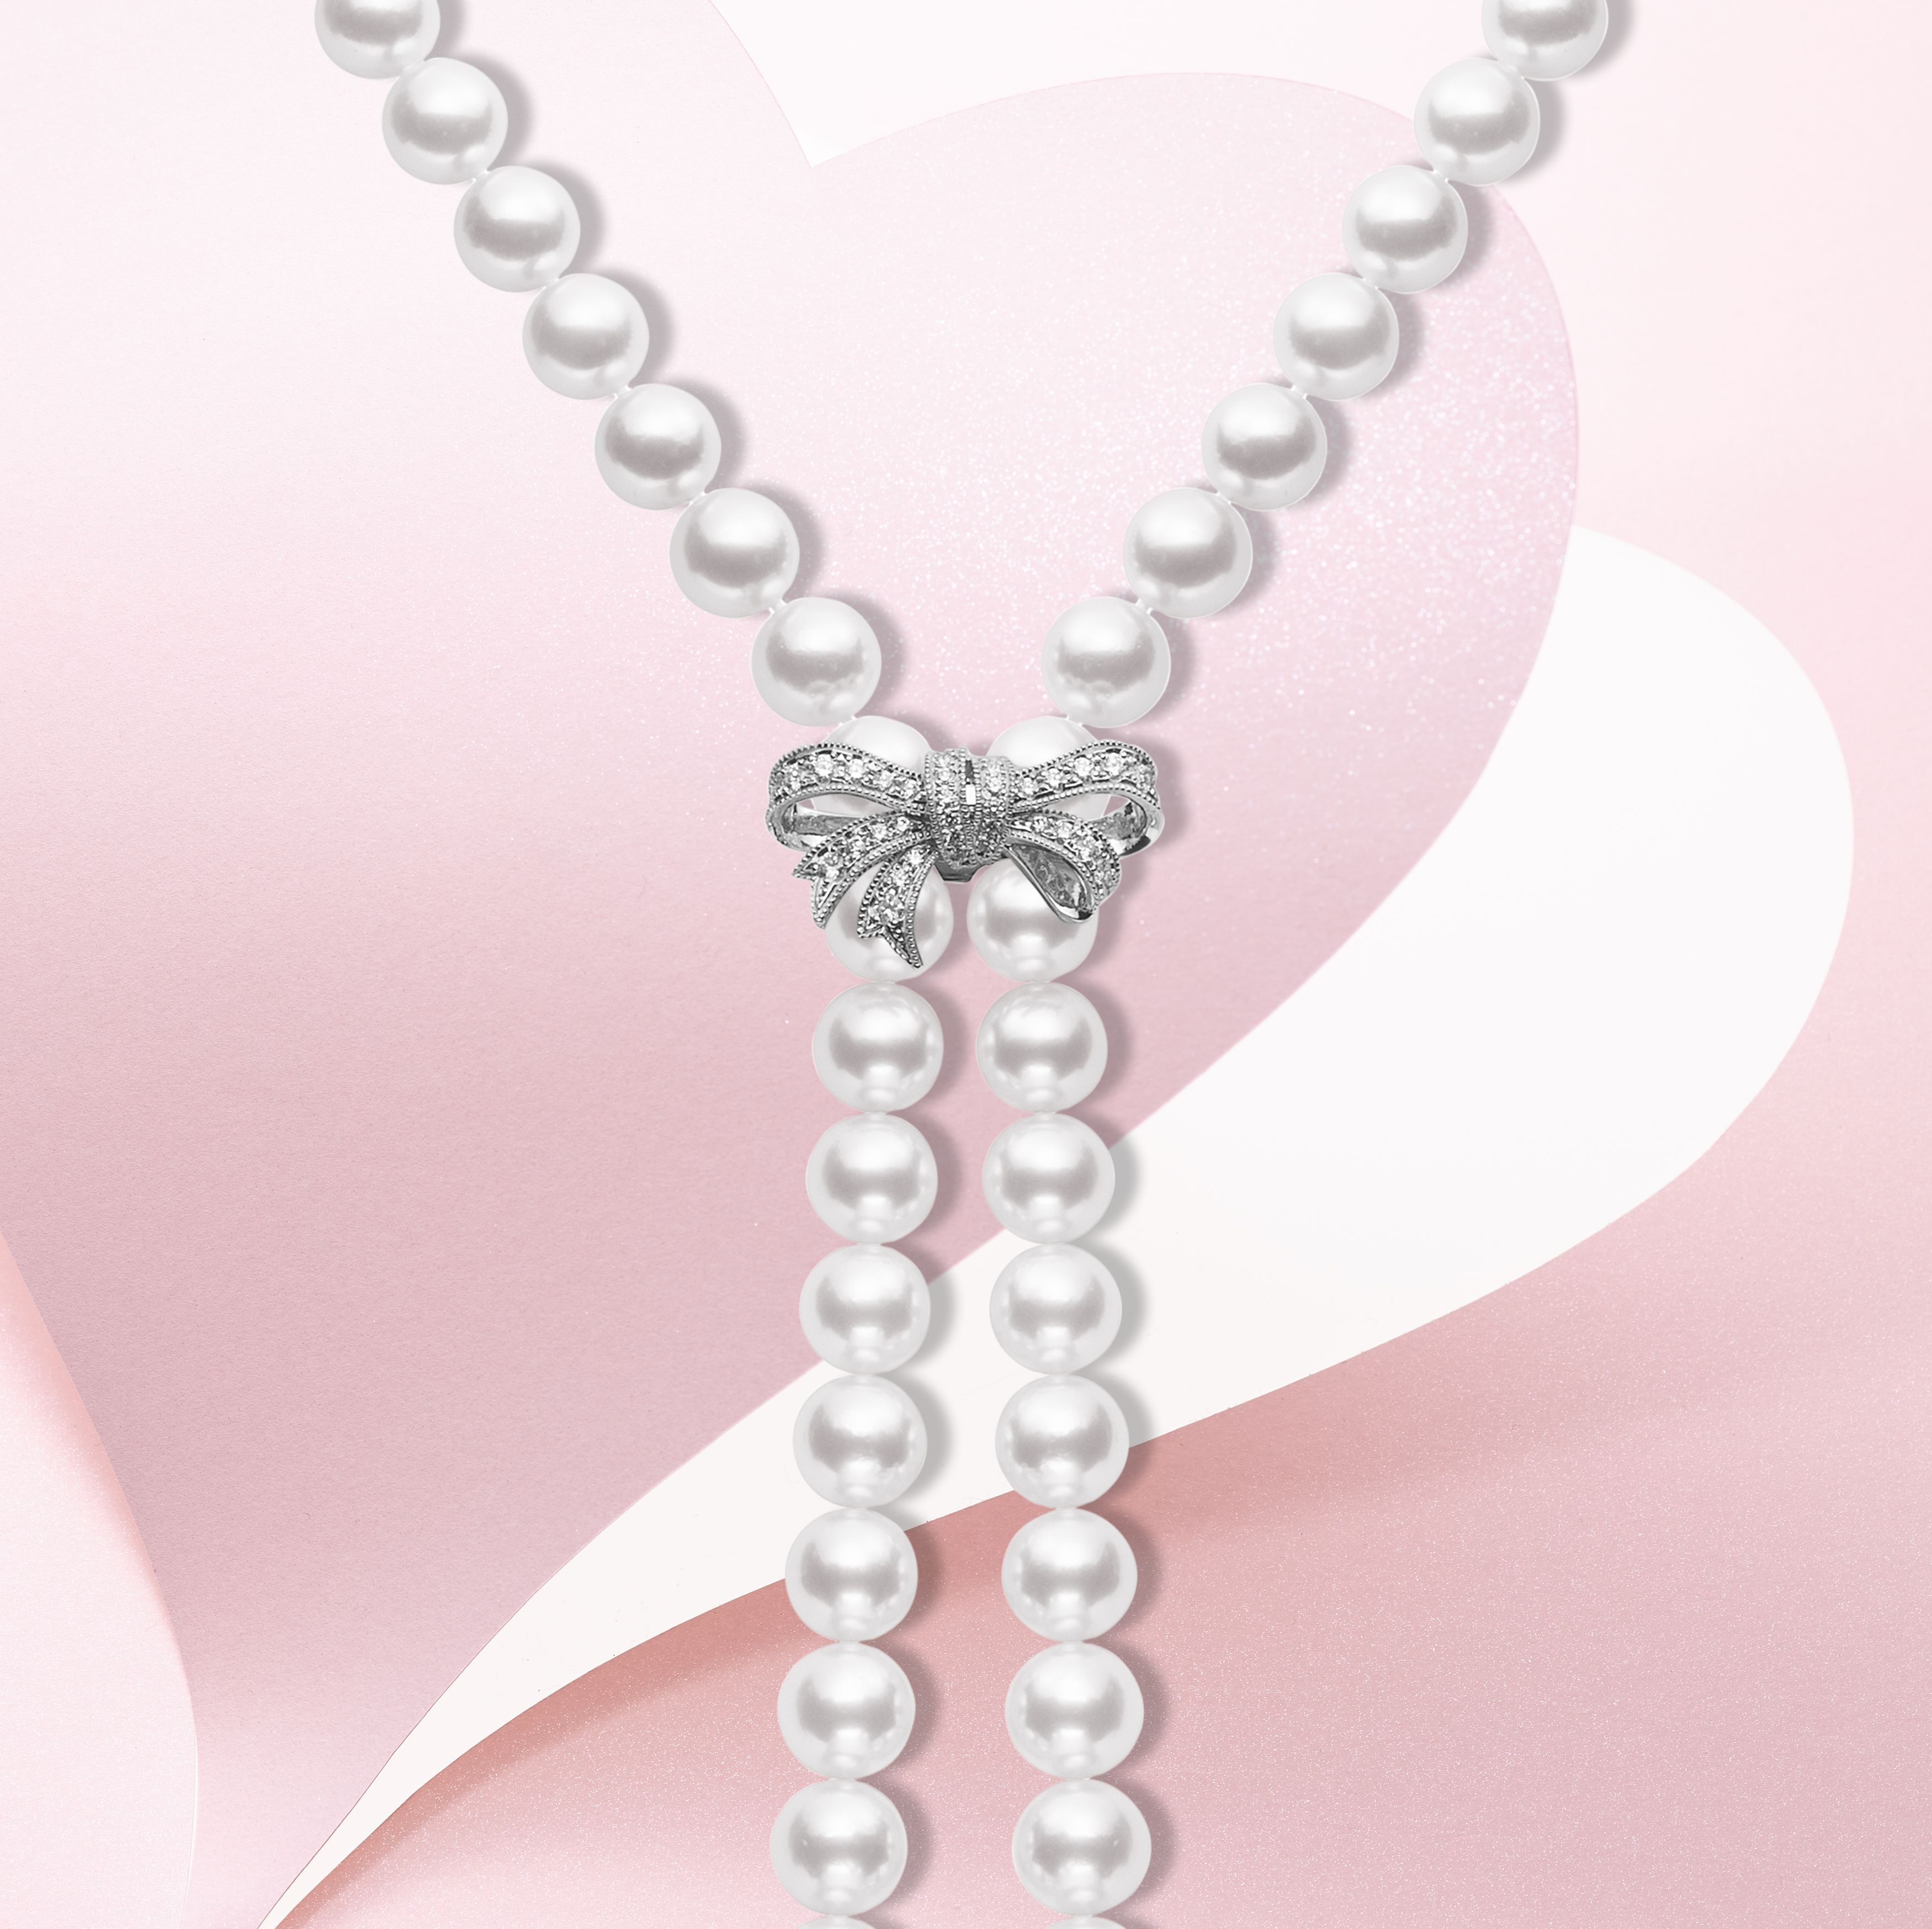 e0fd8d08a Mikimoto's Ribbon Bow Enhancer is the final touch to a classic pearl  strand. #GiftOfALifetime